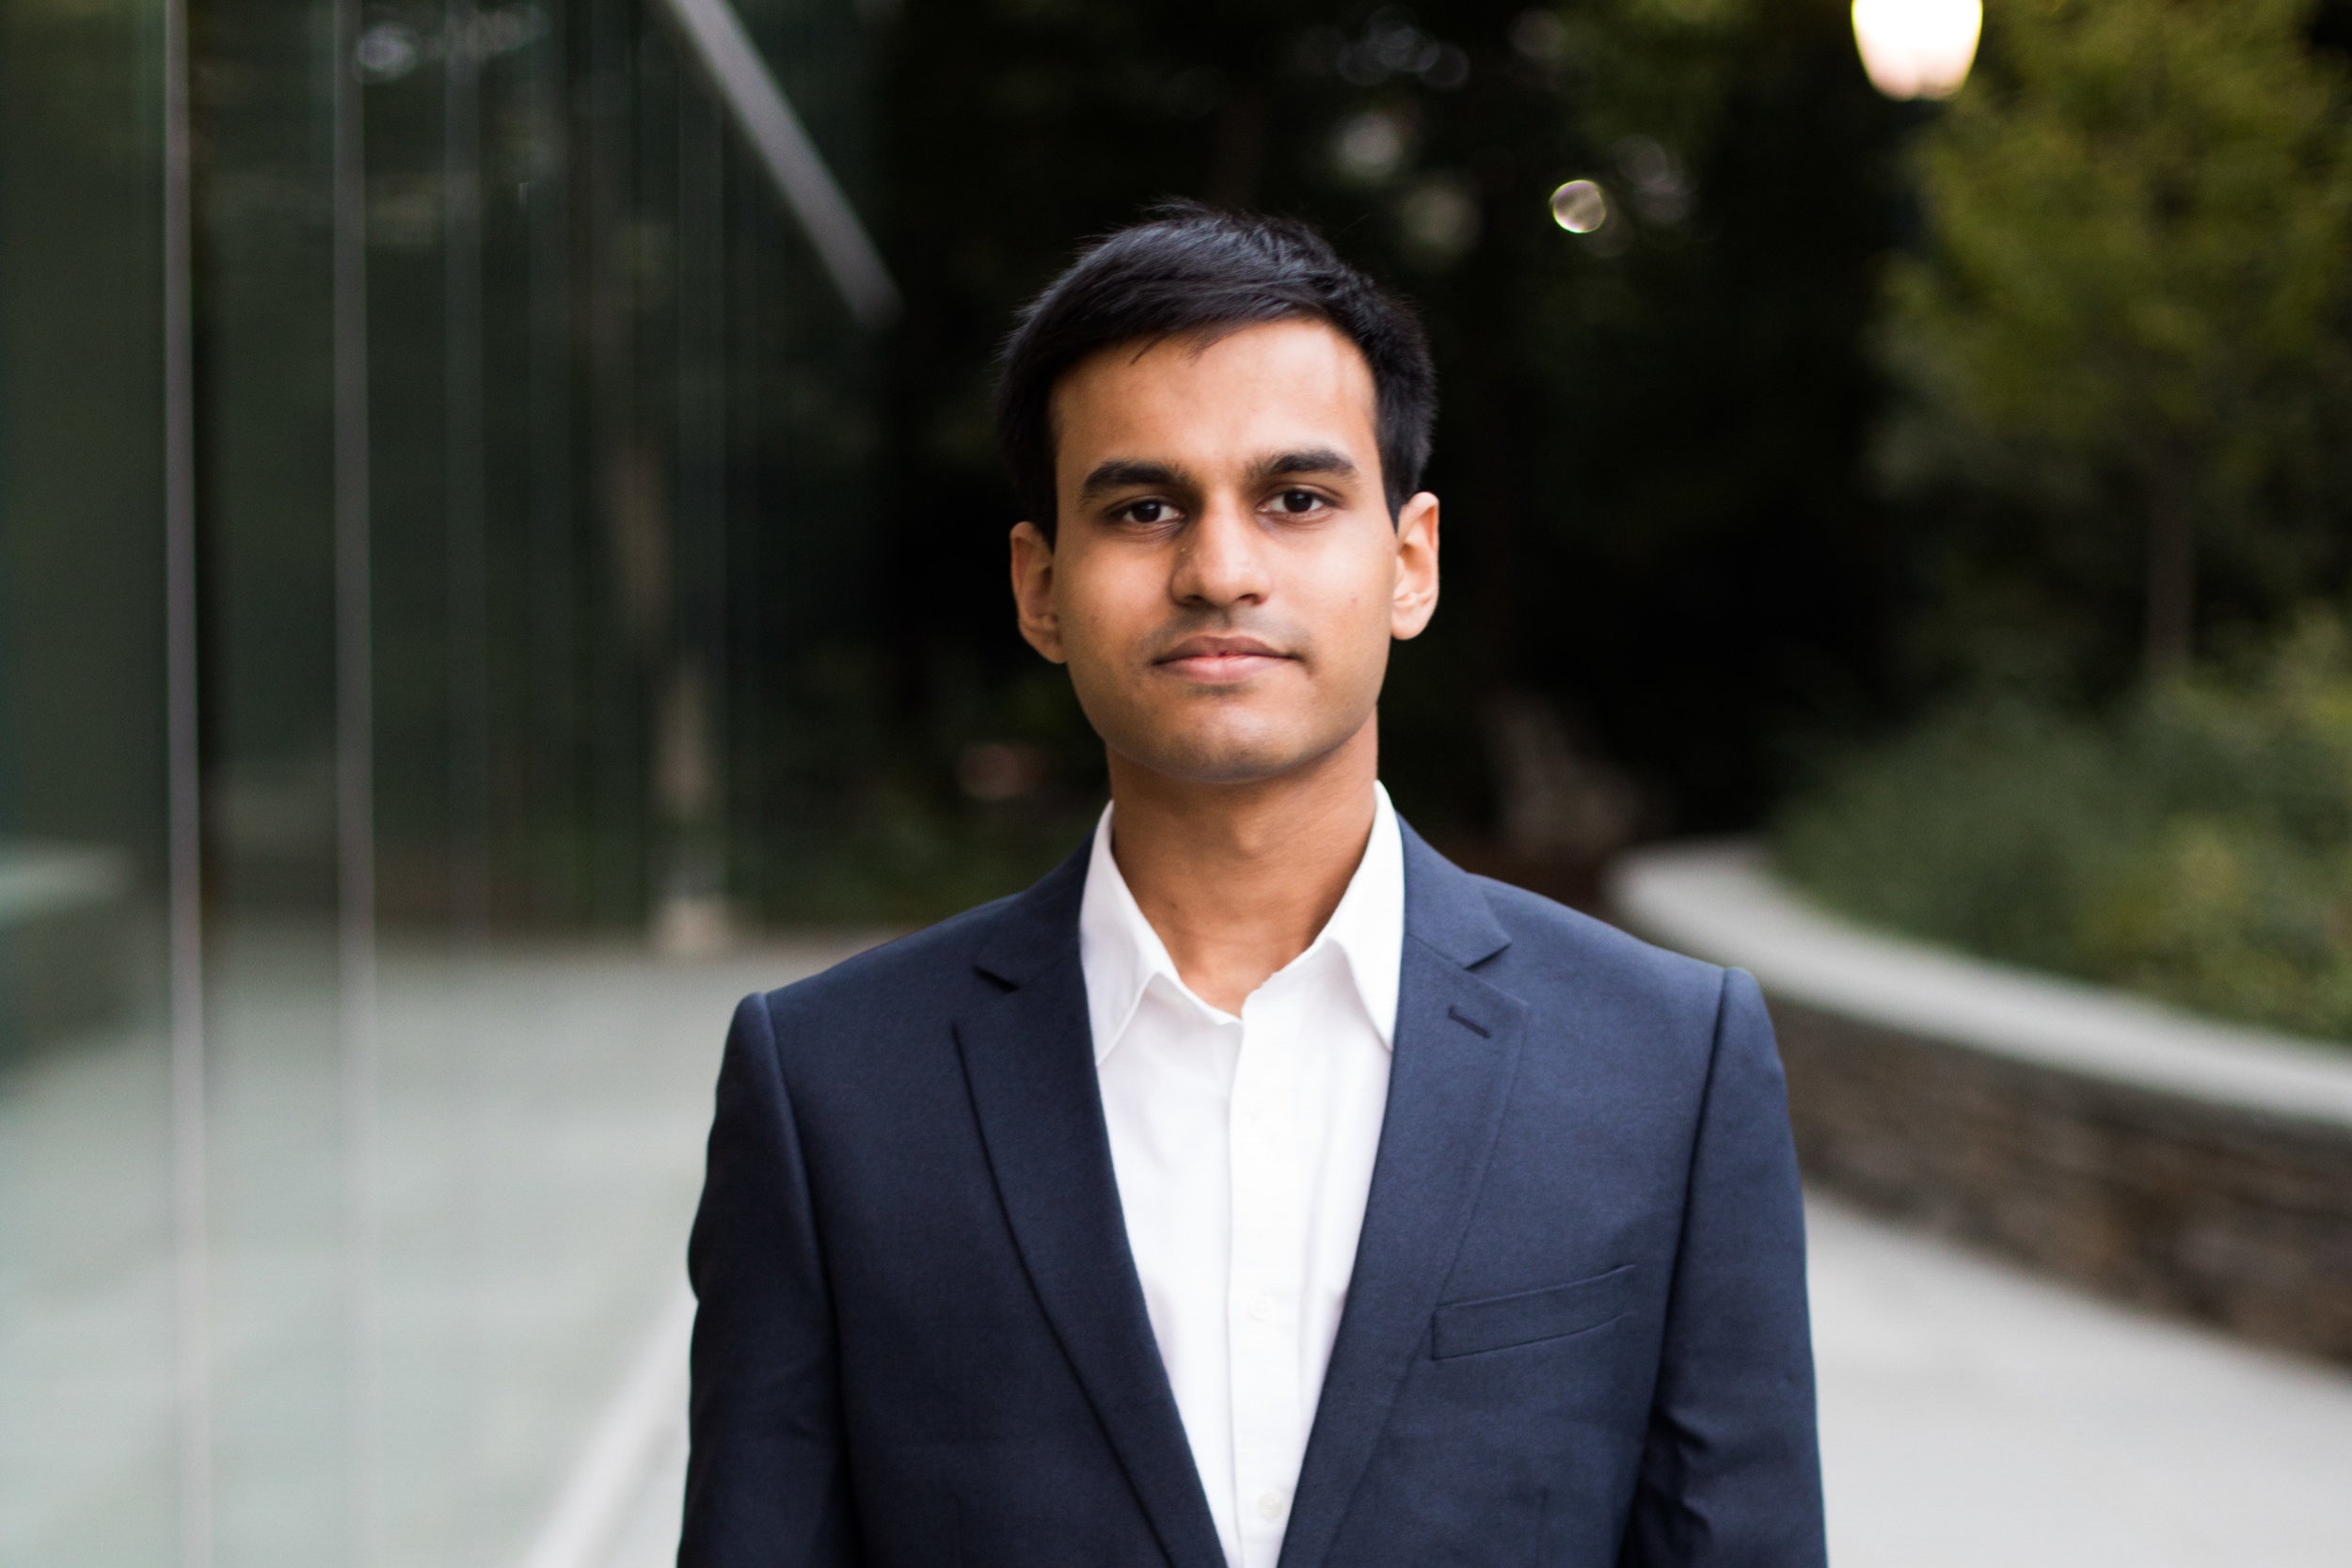 Vijay ramanujan - Major: Mechanical EngineeringYear: 2020Contact: rvijay@seas.upenn.eduBio: Vijay Ramanujan (SEAS '20, W '20) is a sophomore from Singapore, studying Mechanical Engineering and Finance. In addition to EDAB, Vijay is a member of the Penn Debate Society, MUSE Consulting, and the Philomathean Society. In his free time, he enjoys binge watching movies and television shows.